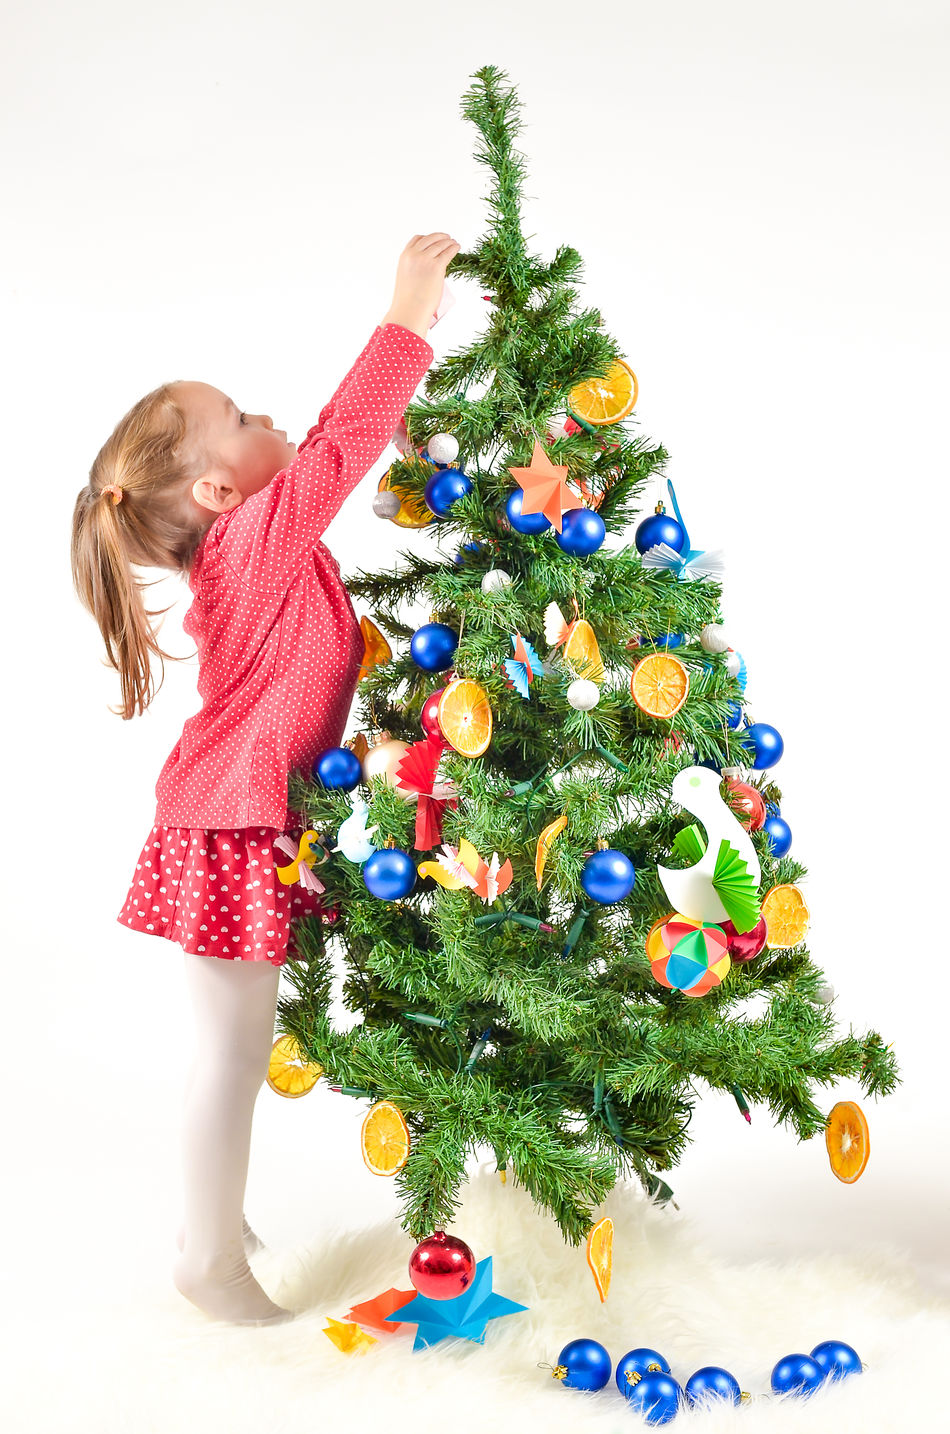 Beautiful stock photos of weihnachtsbaum,  2-3 Years,  Arms Raised,  Blond Hair,  Casual Clothing